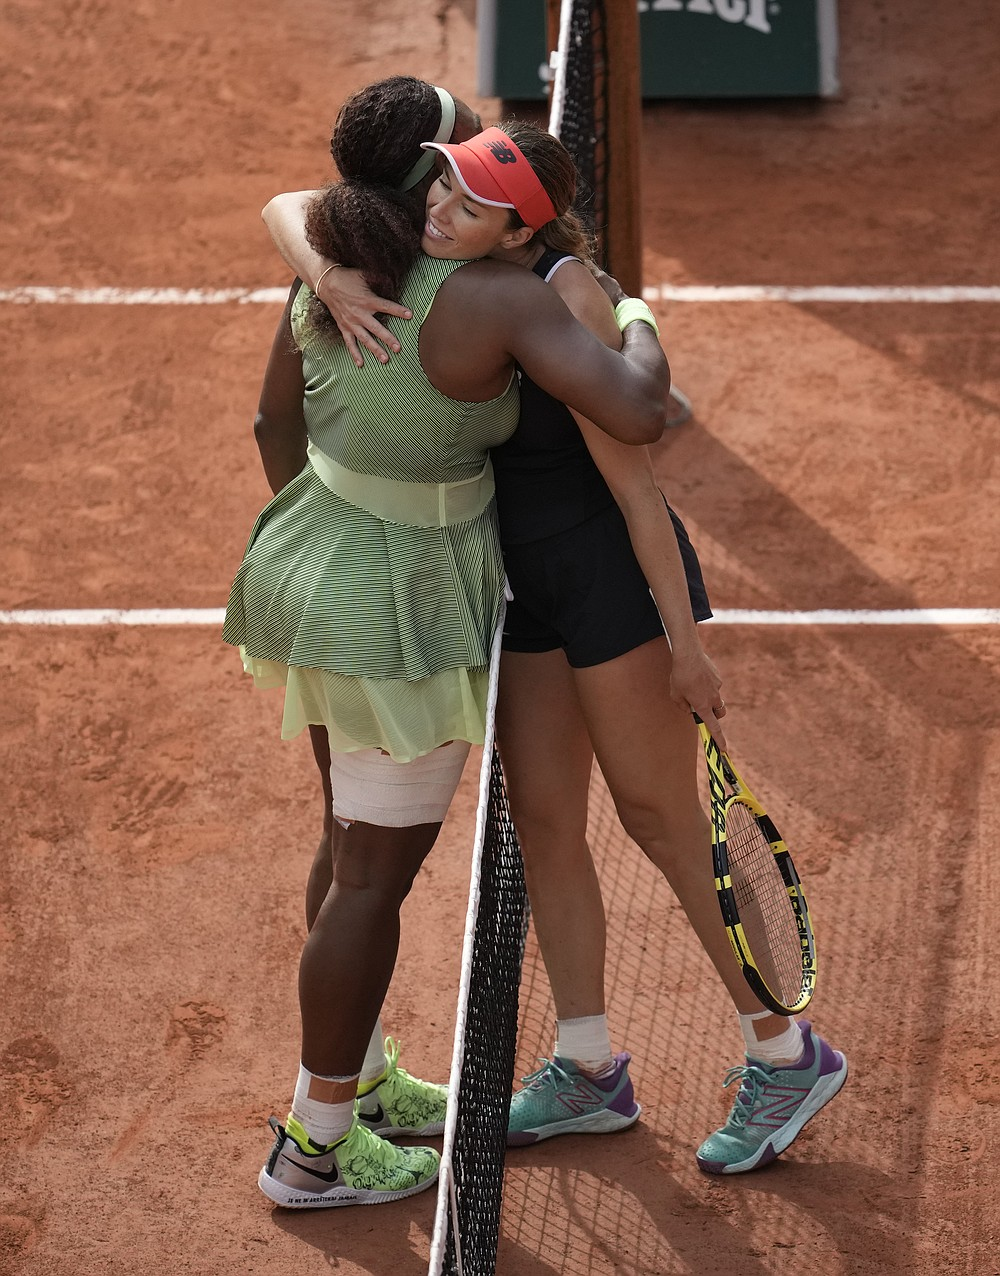 United States Serena Williams, left hugs United States's Danielle Collins after she defeated her in their third round match on day 6, of the French Open tennis tournament at Roland Garros in Paris, France, Friday, June 4, 2021. (AP Photo/Christophe Ena)